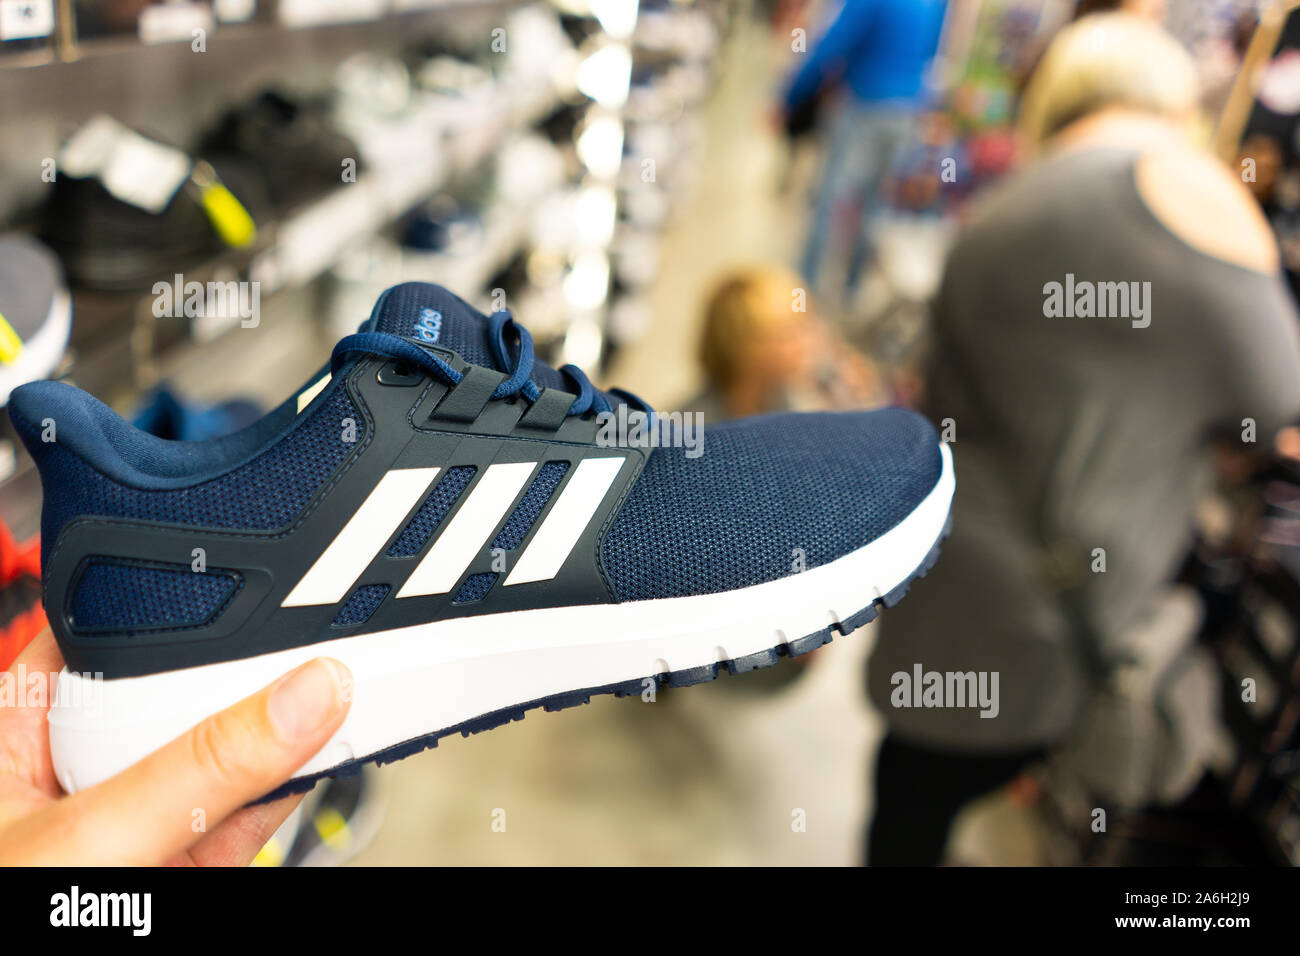 Adidas Trainers High Resolution Stock Photography and Images - Alamy